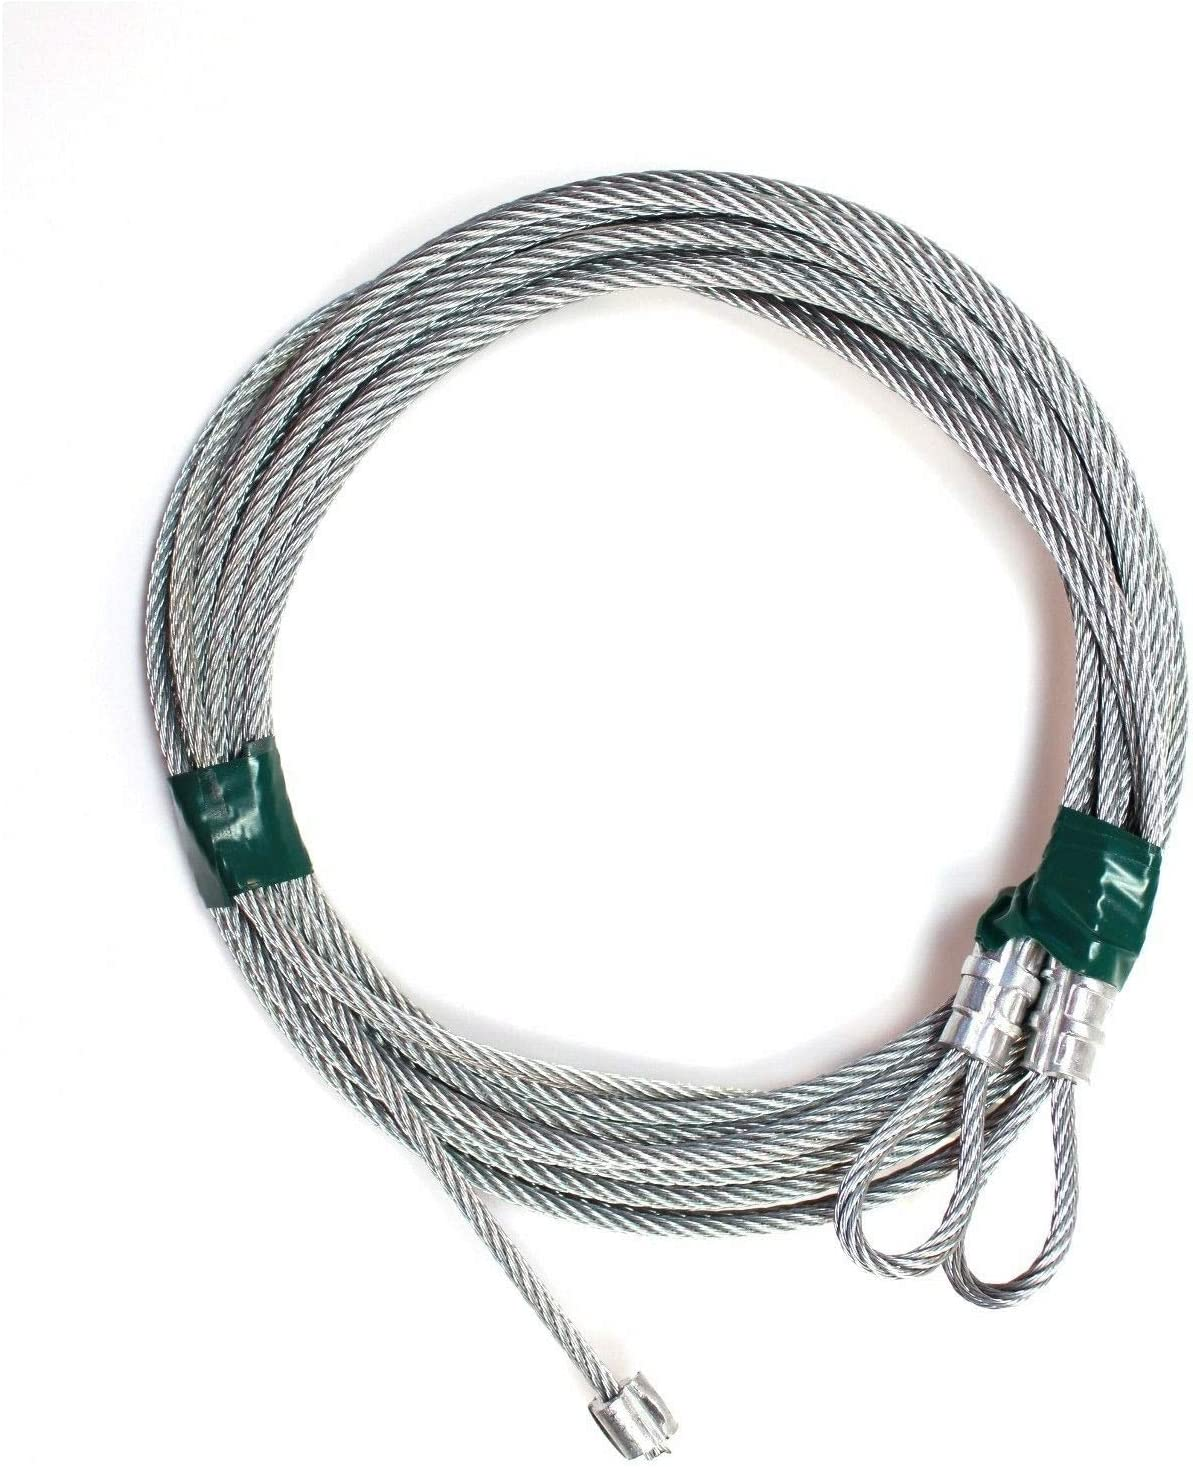 Cables for Garage Door Torsion Spring Doors 9